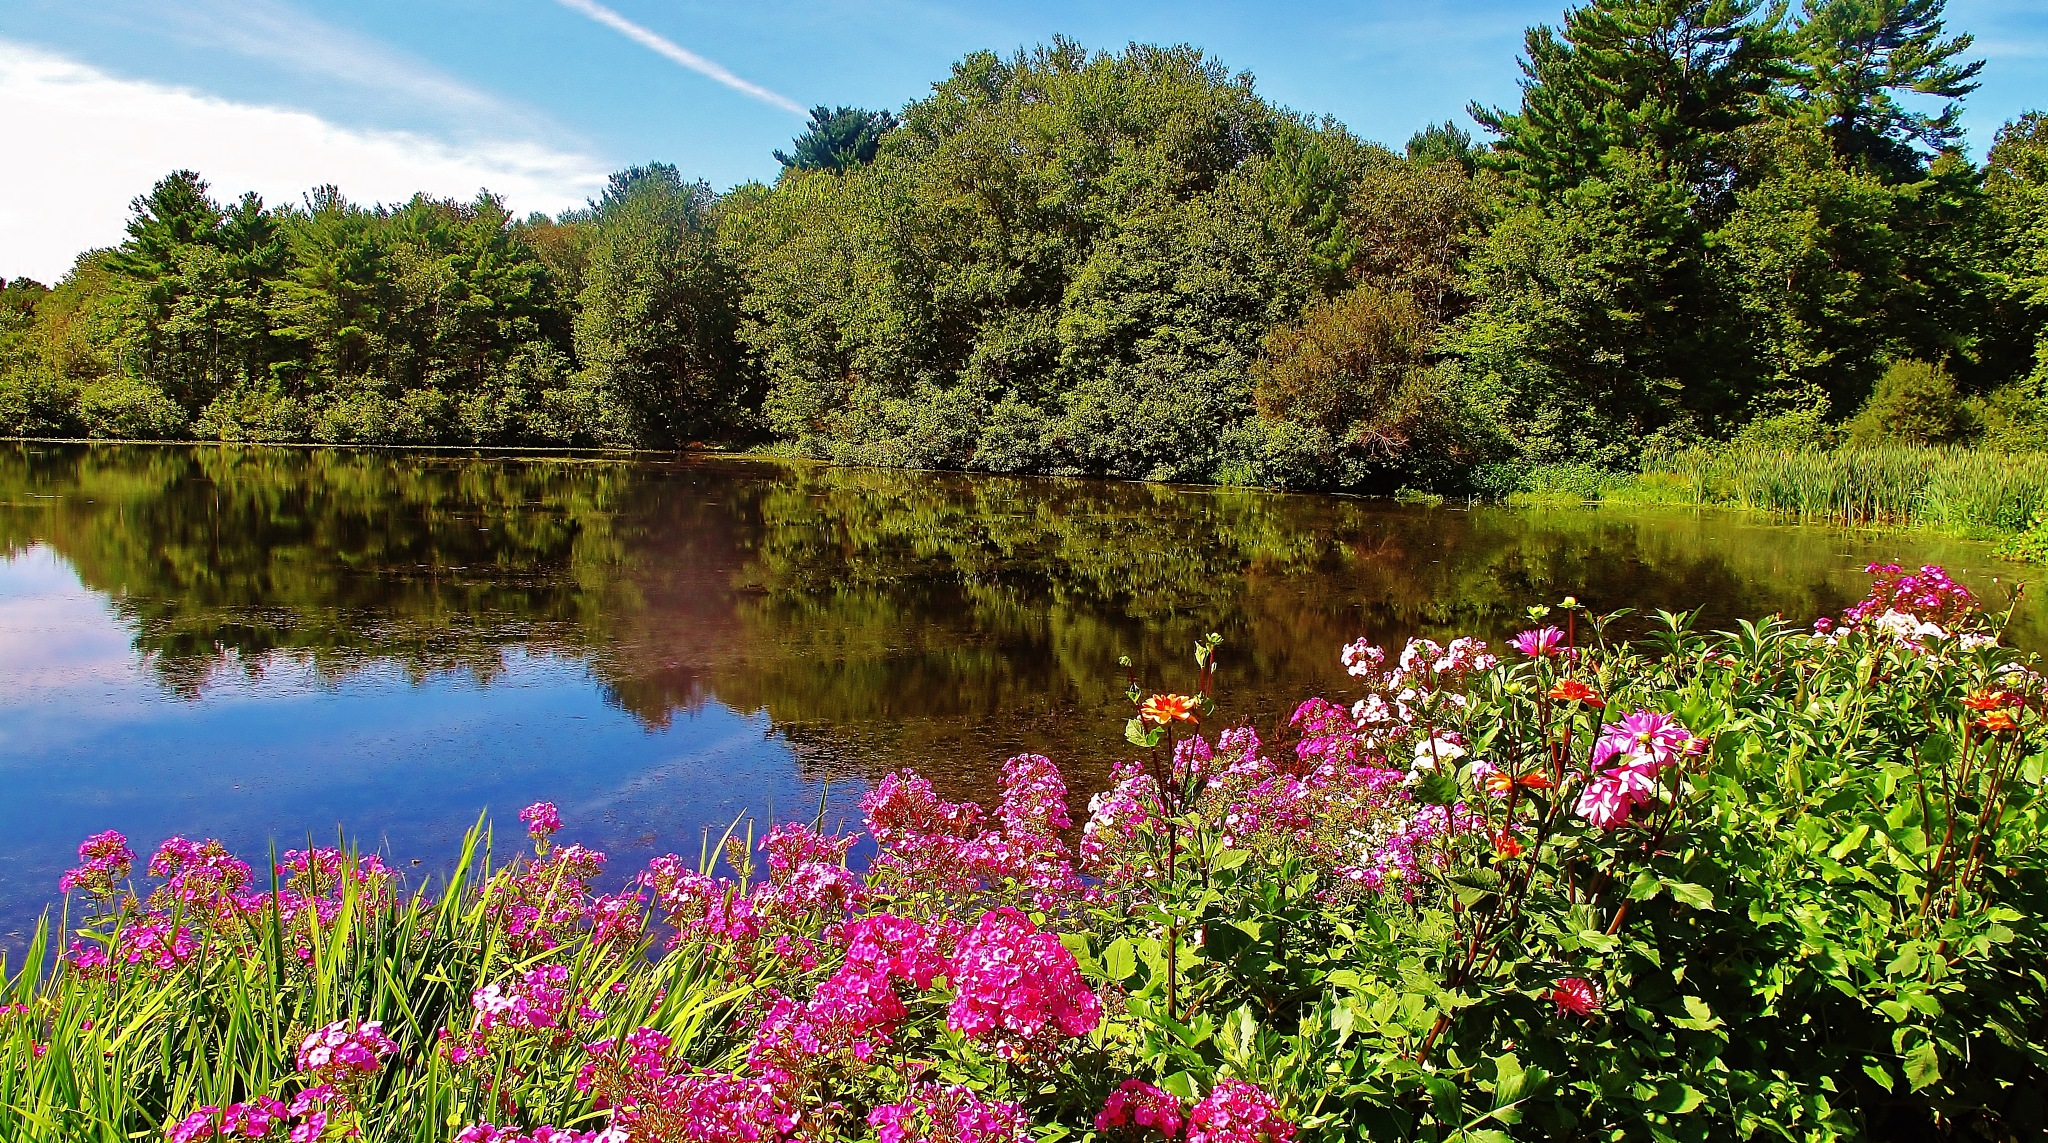 flower garden by the pond . by paulcrimi178